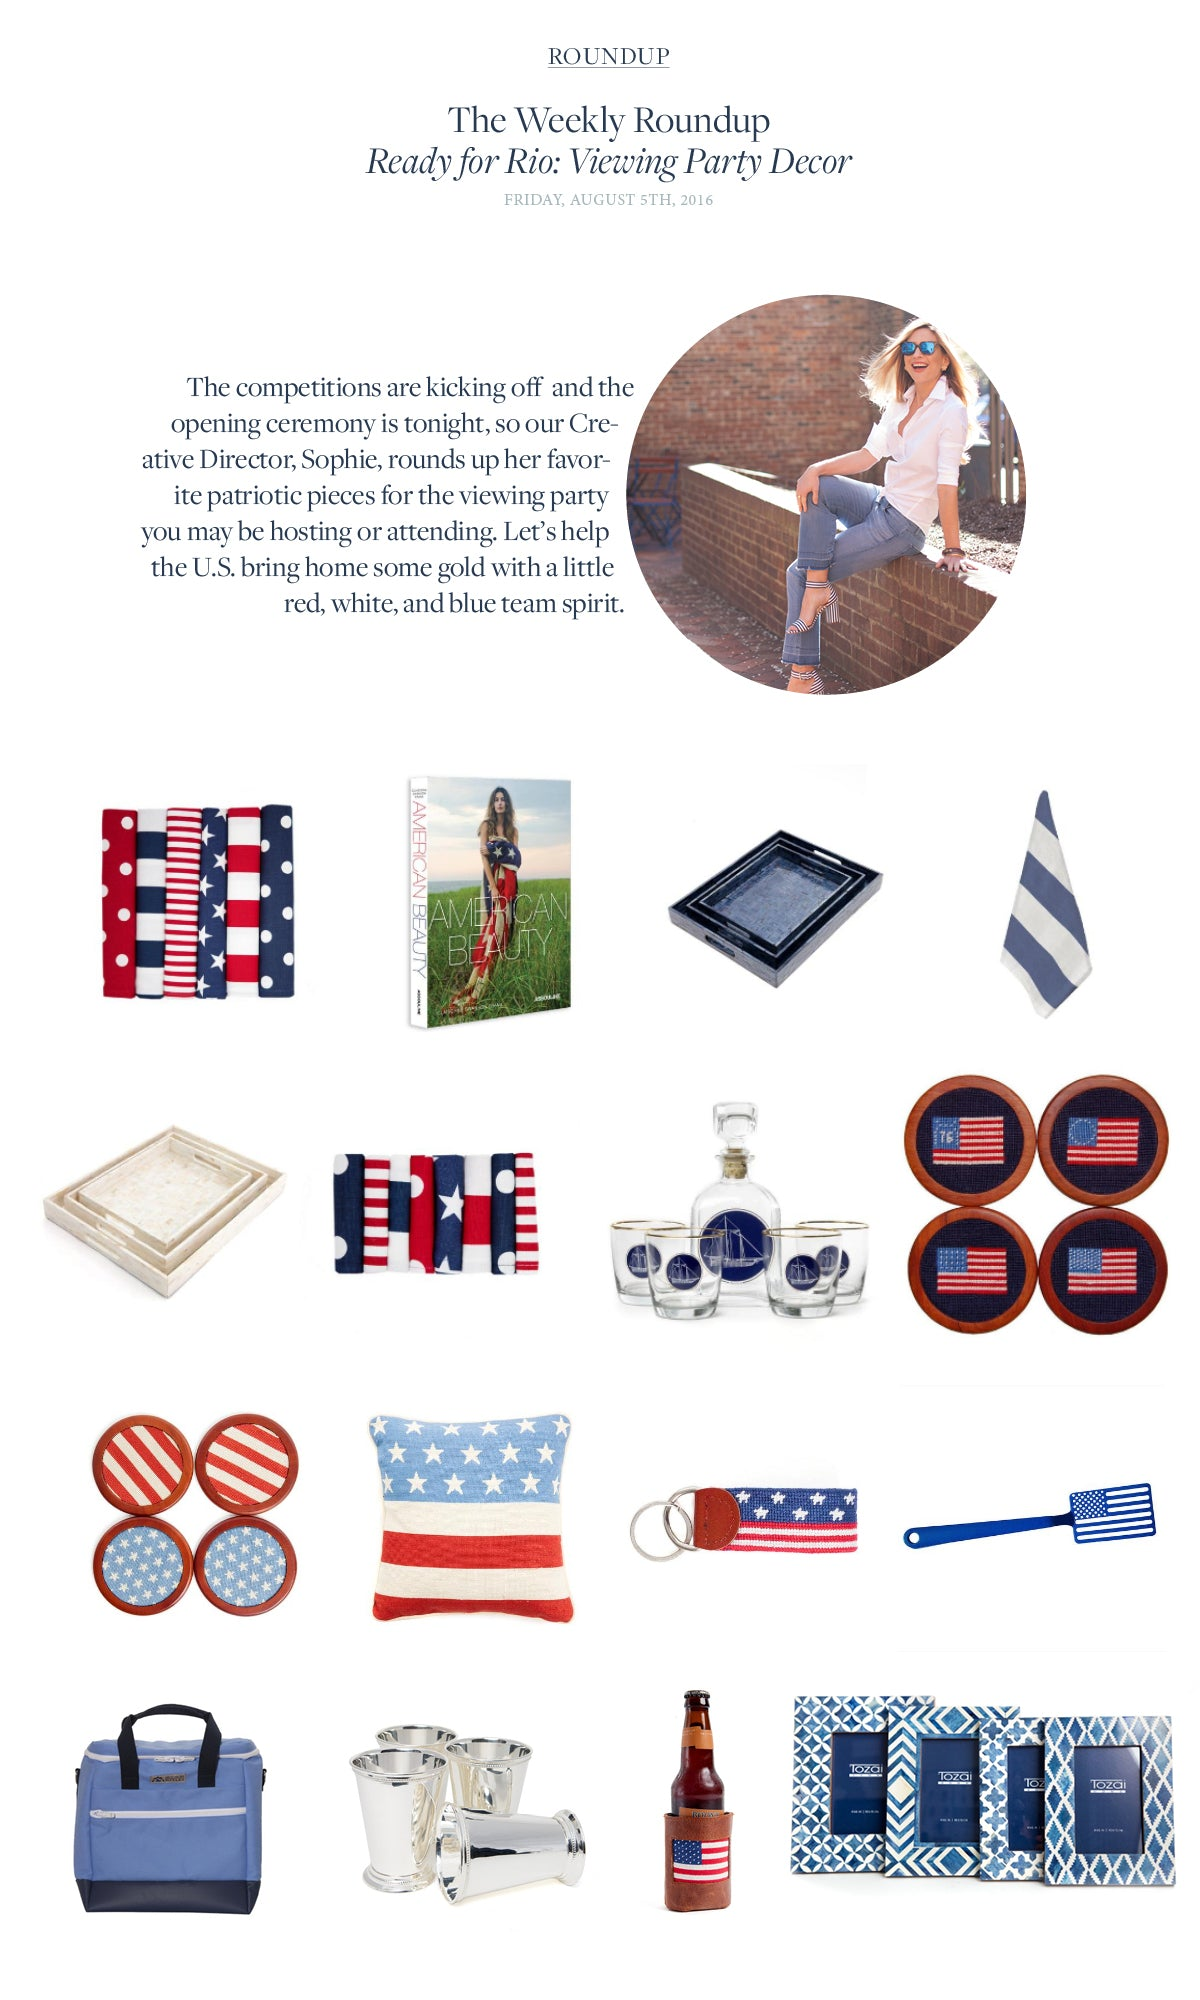 The competitions are kicking off  and the opening ceremony is tonight, so our Creative Director, Sophie, rounds up her favorite patriotic pieces for the viewing party you may be hosting or attending. Let's help the U.S. bring home some gold with a little red, white, and blue team spirit.